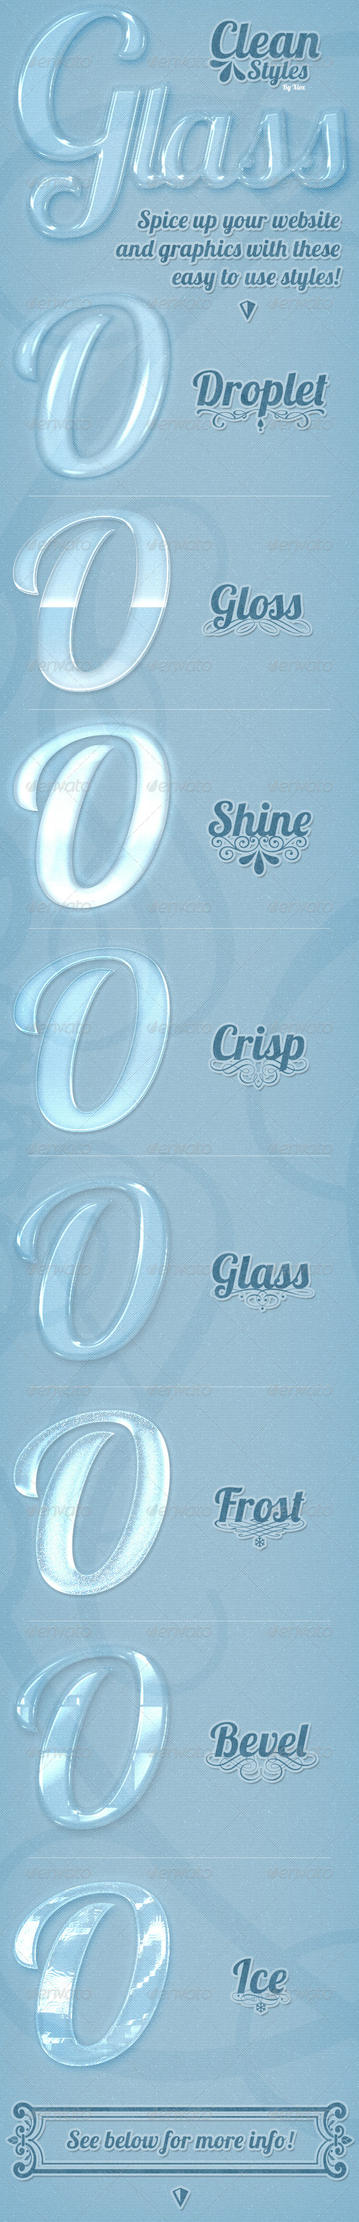 Clean Styles - Glass by Xiox231